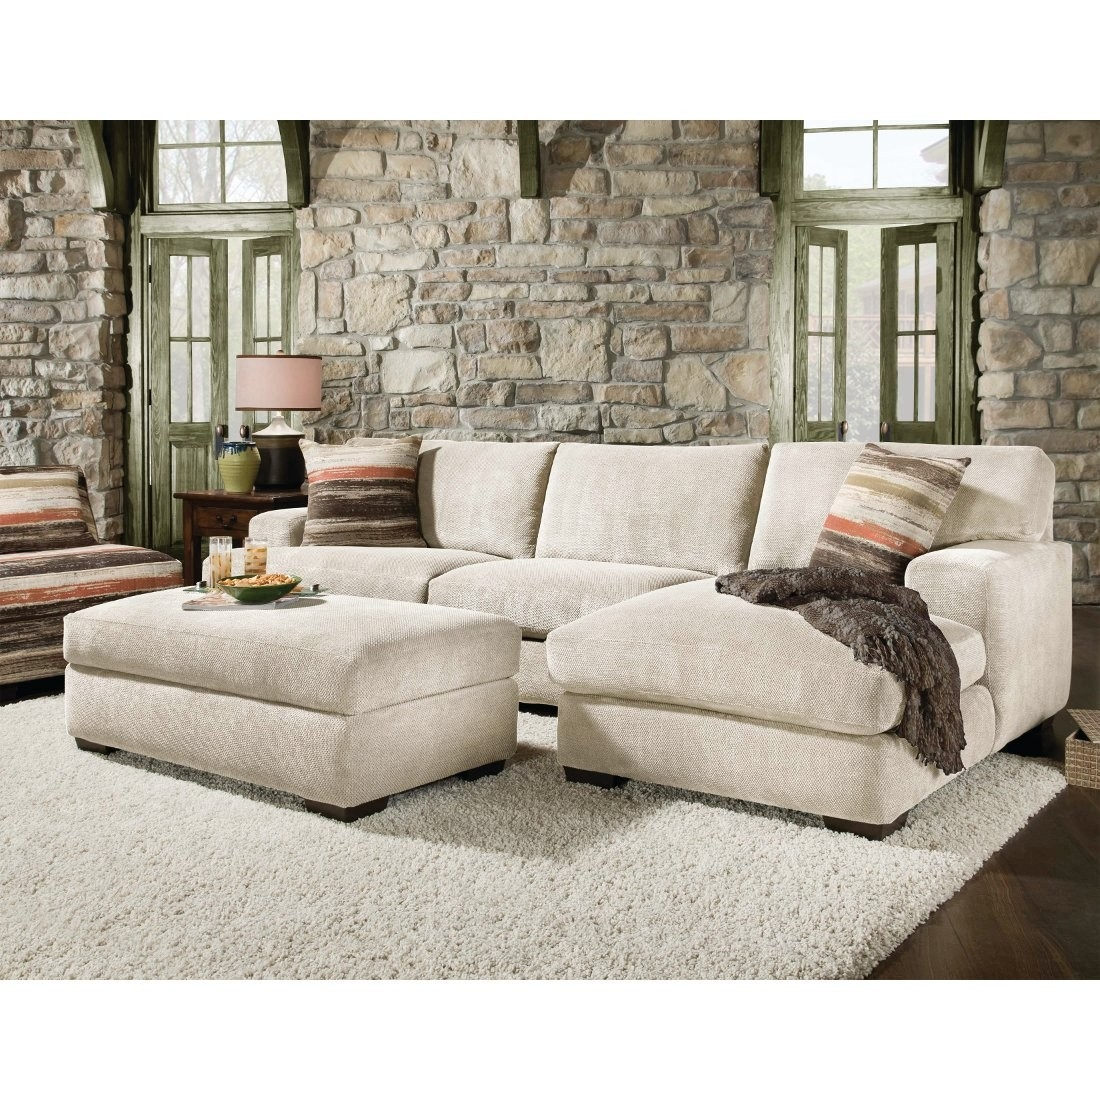 Corinthian Mead Sectional Sofa Piece Cream 48a3lf Conns Within Corinthian Sectional Sofas (Image 7 of 15)